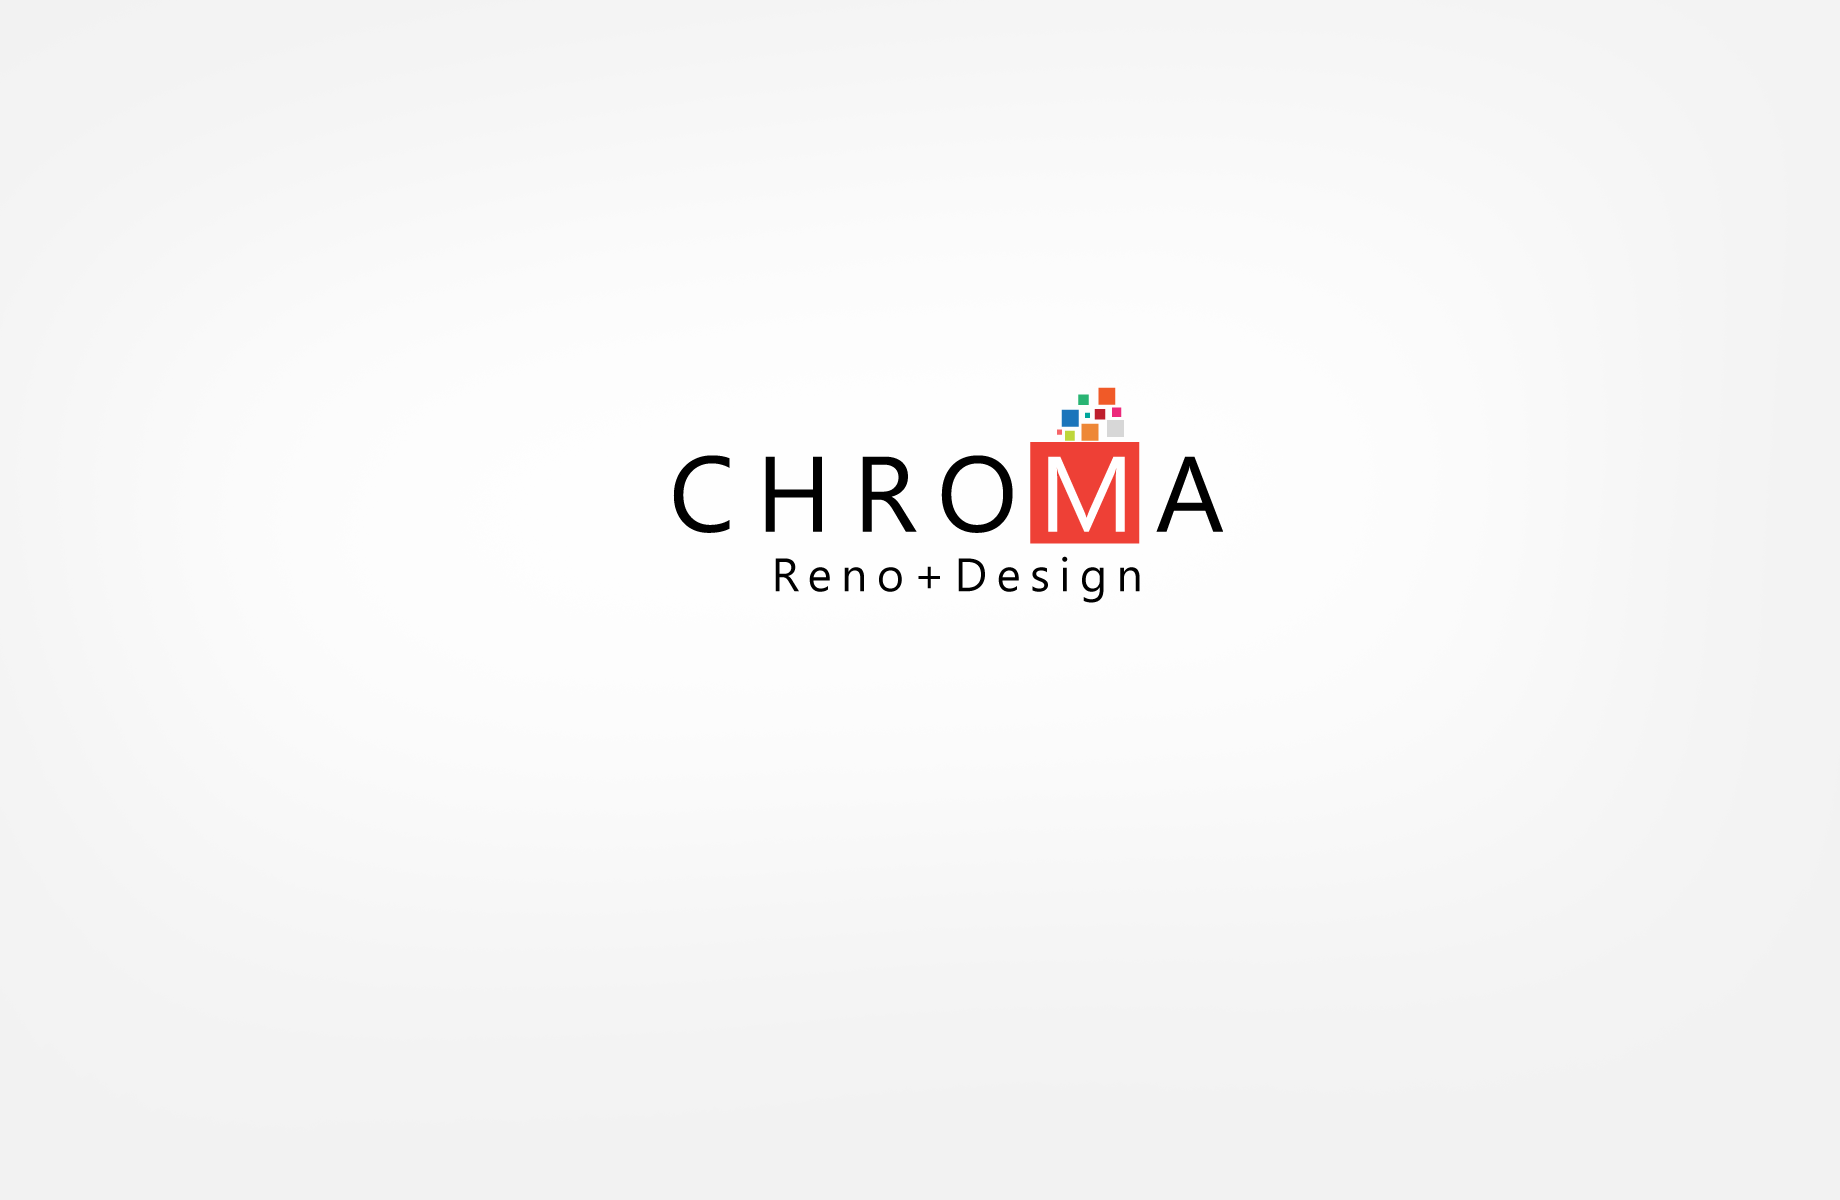 Logo Design by Jan Chua - Entry No. 9 in the Logo Design Contest Inspiring Logo Design for Chroma Reno+Design.